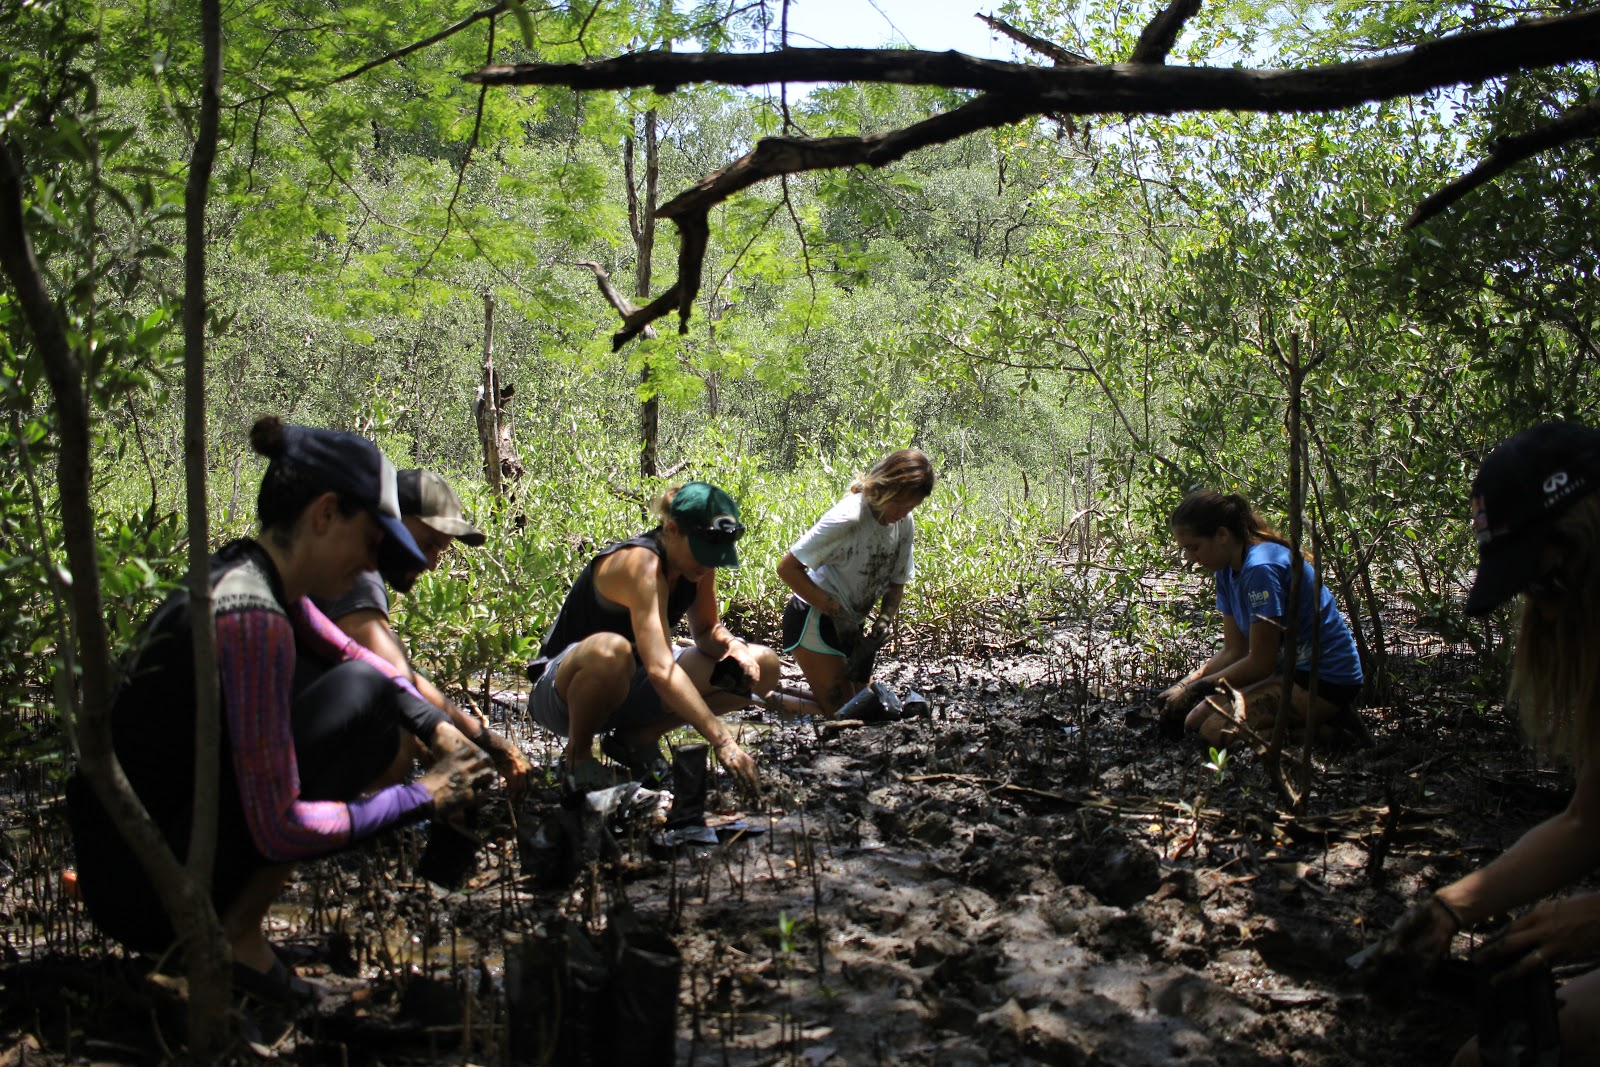 Students also set out into nature to learn about the ecosystems around Guanacaste